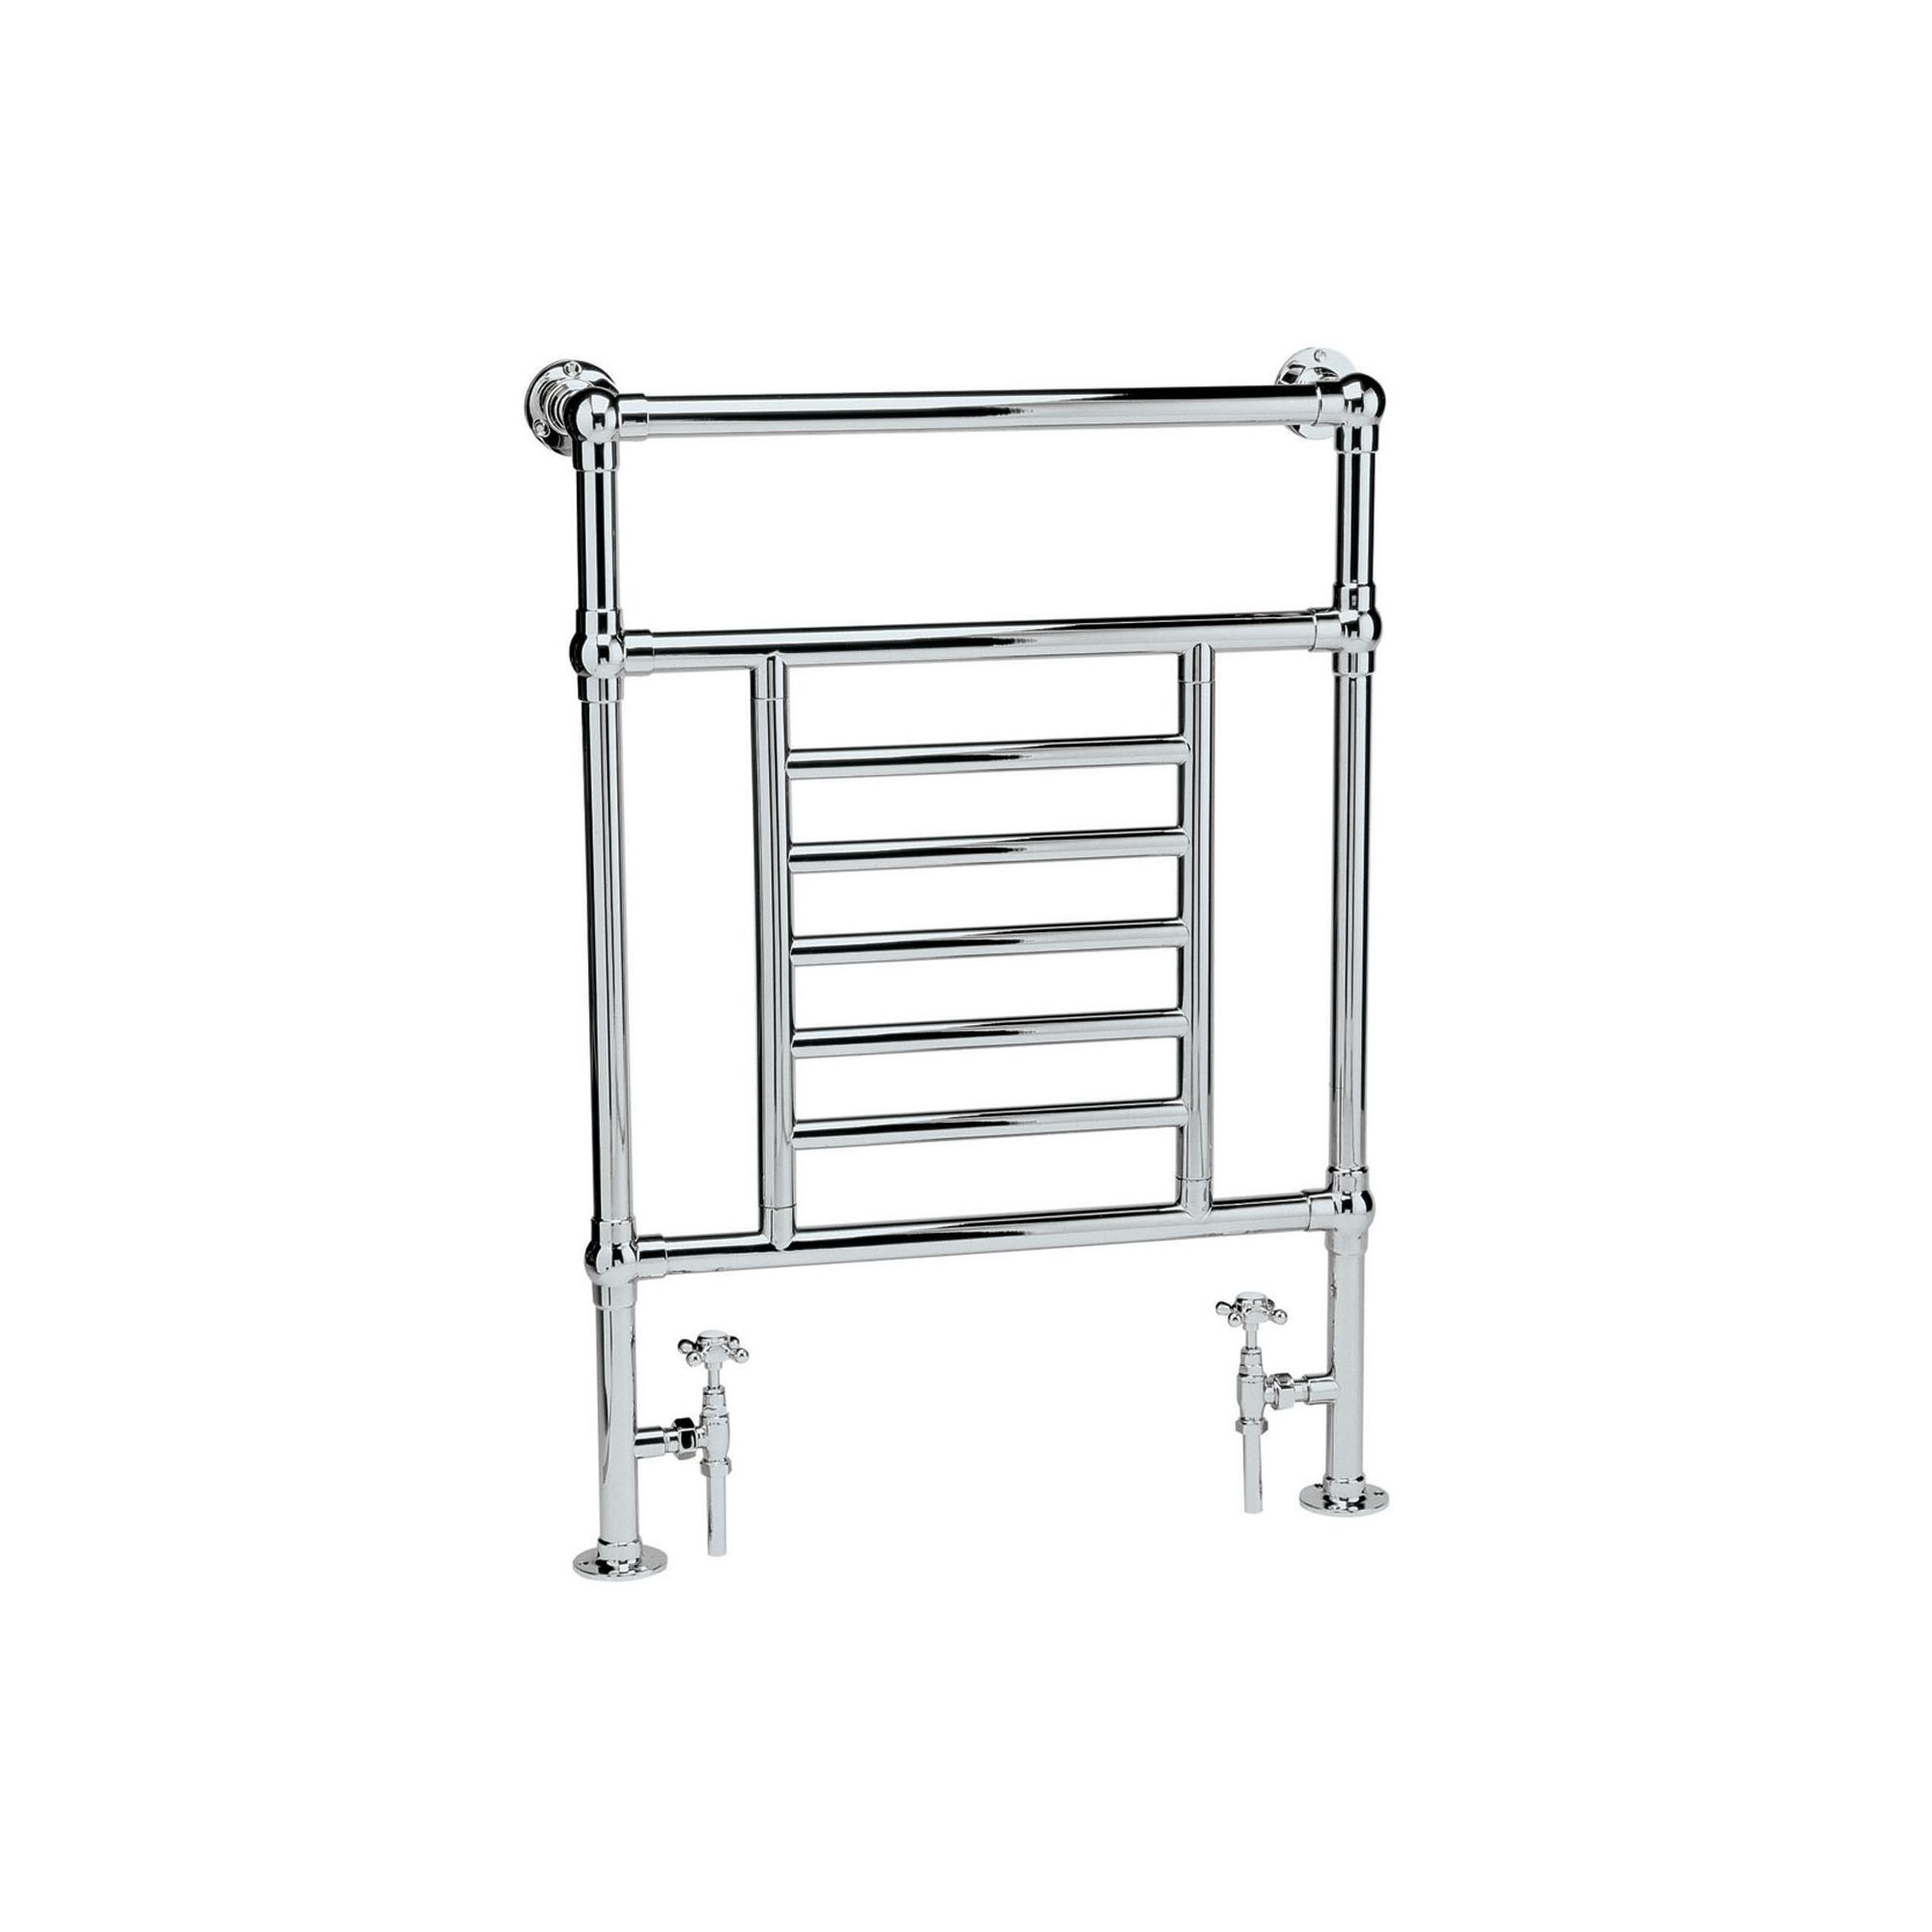 Hudson Reed Princess Heated Towel Rail at Tesco Direct